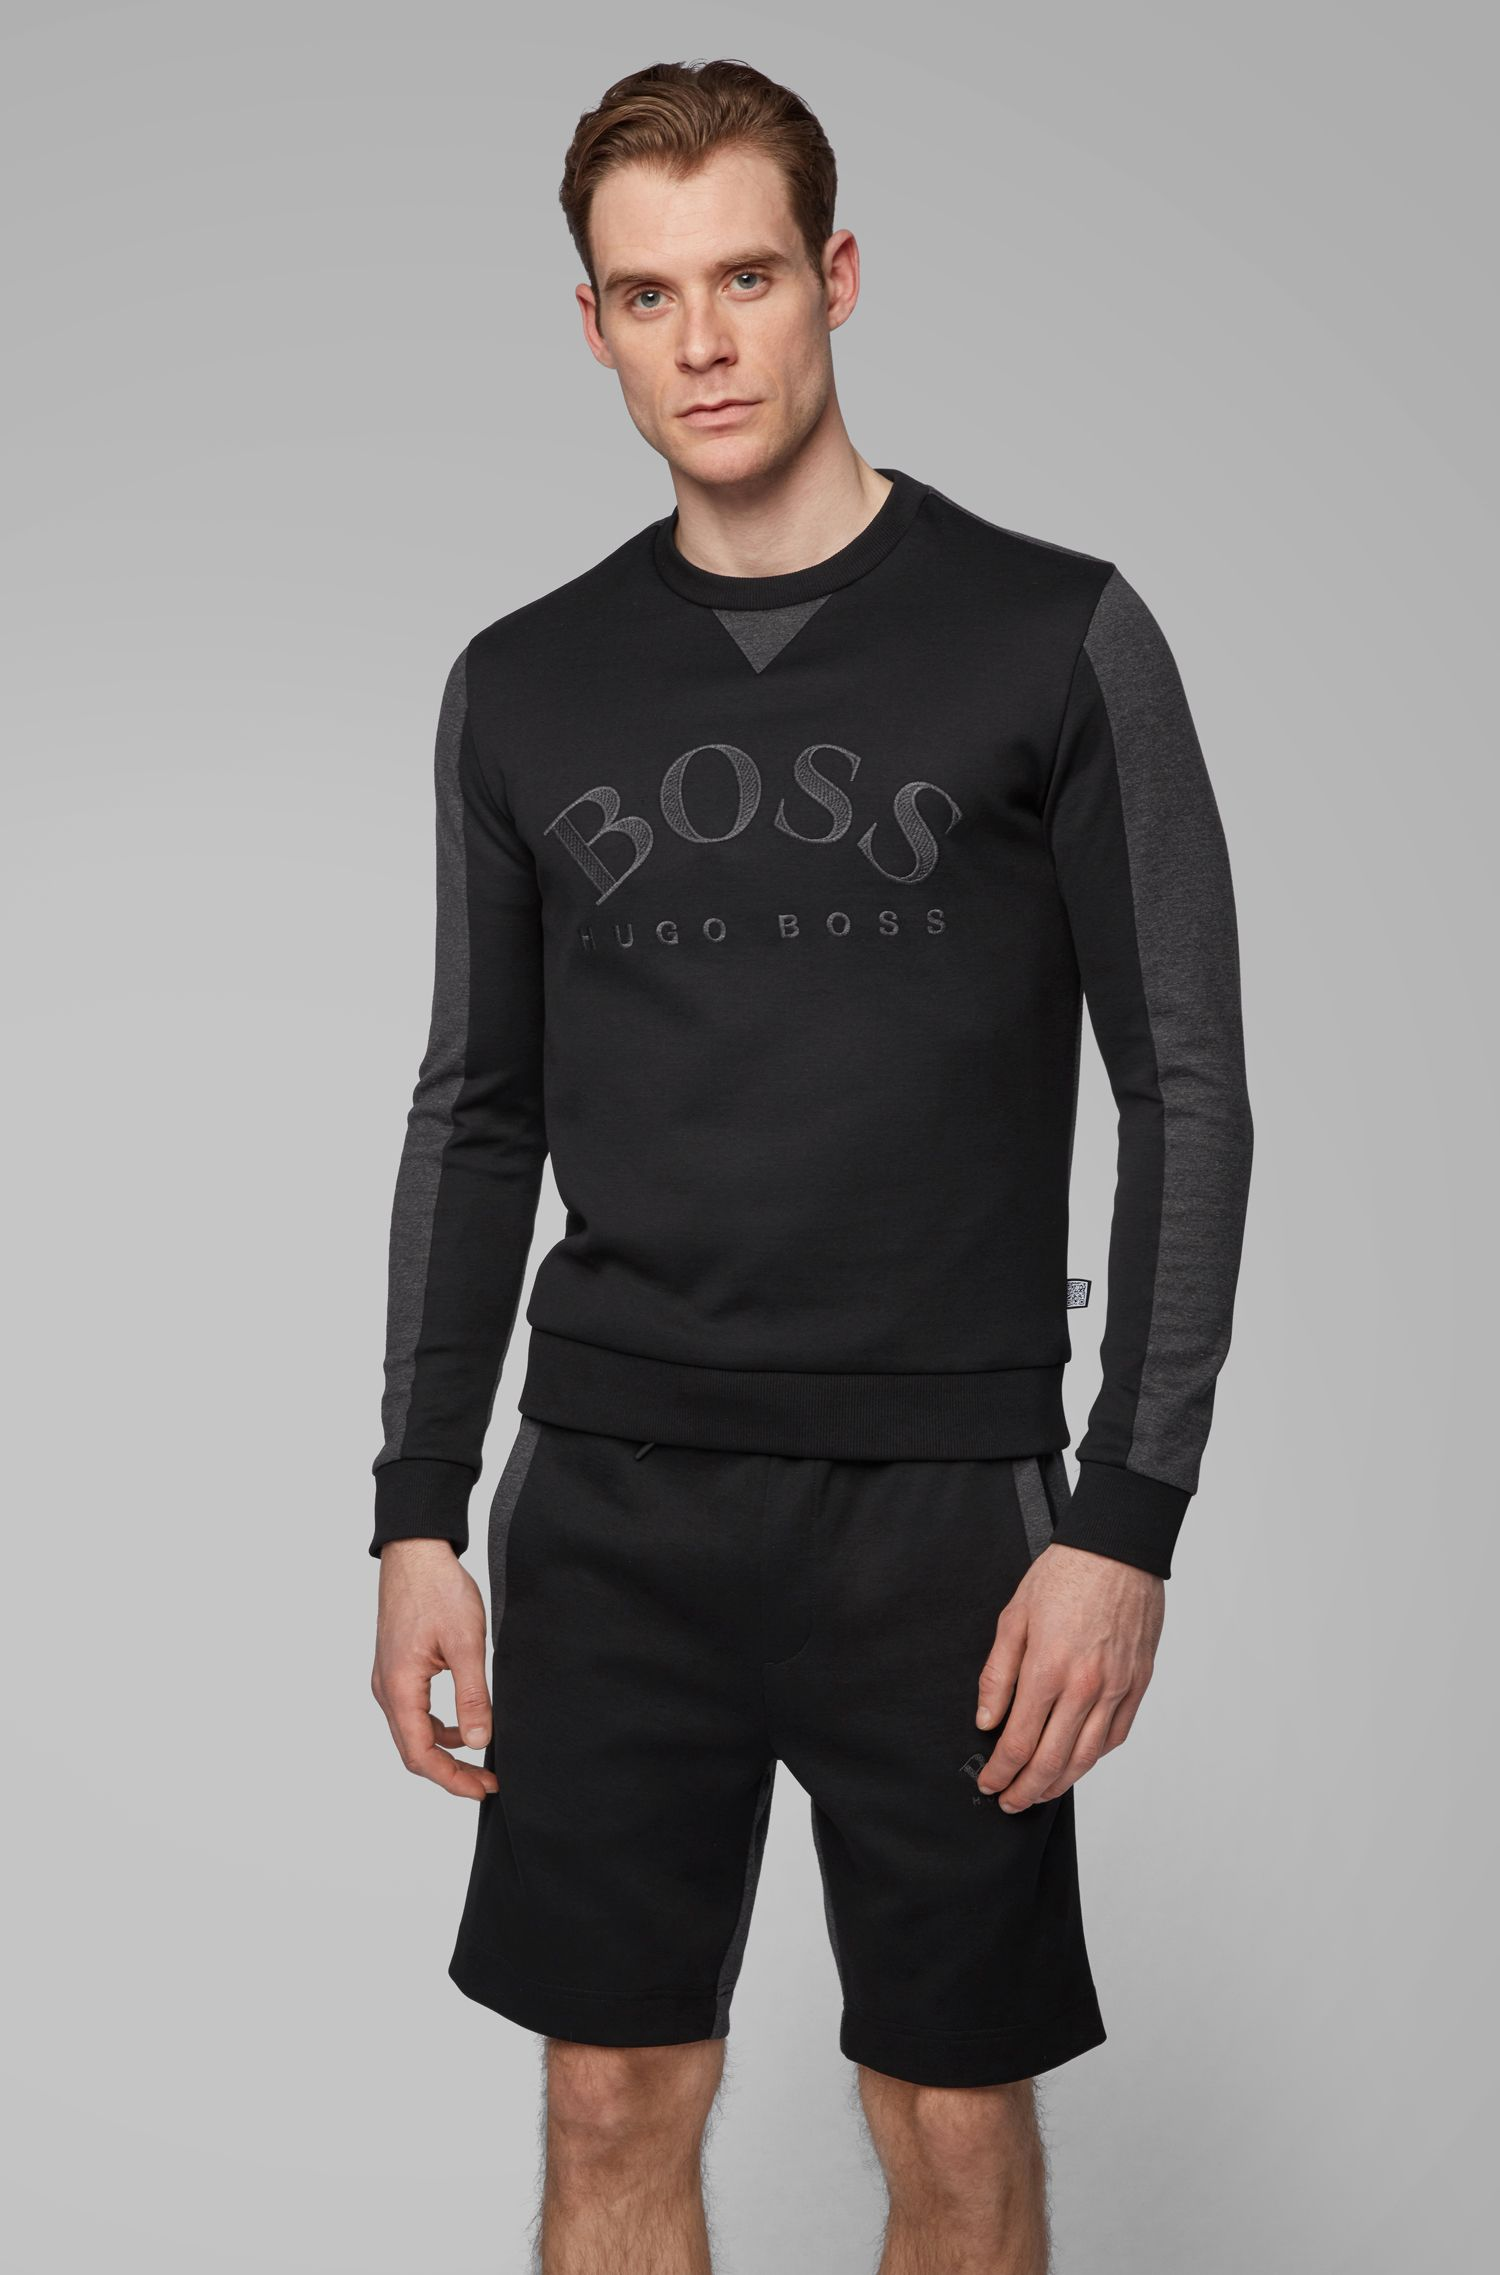 Mixed-material slim-fit sweatshirt with curved logo, Black